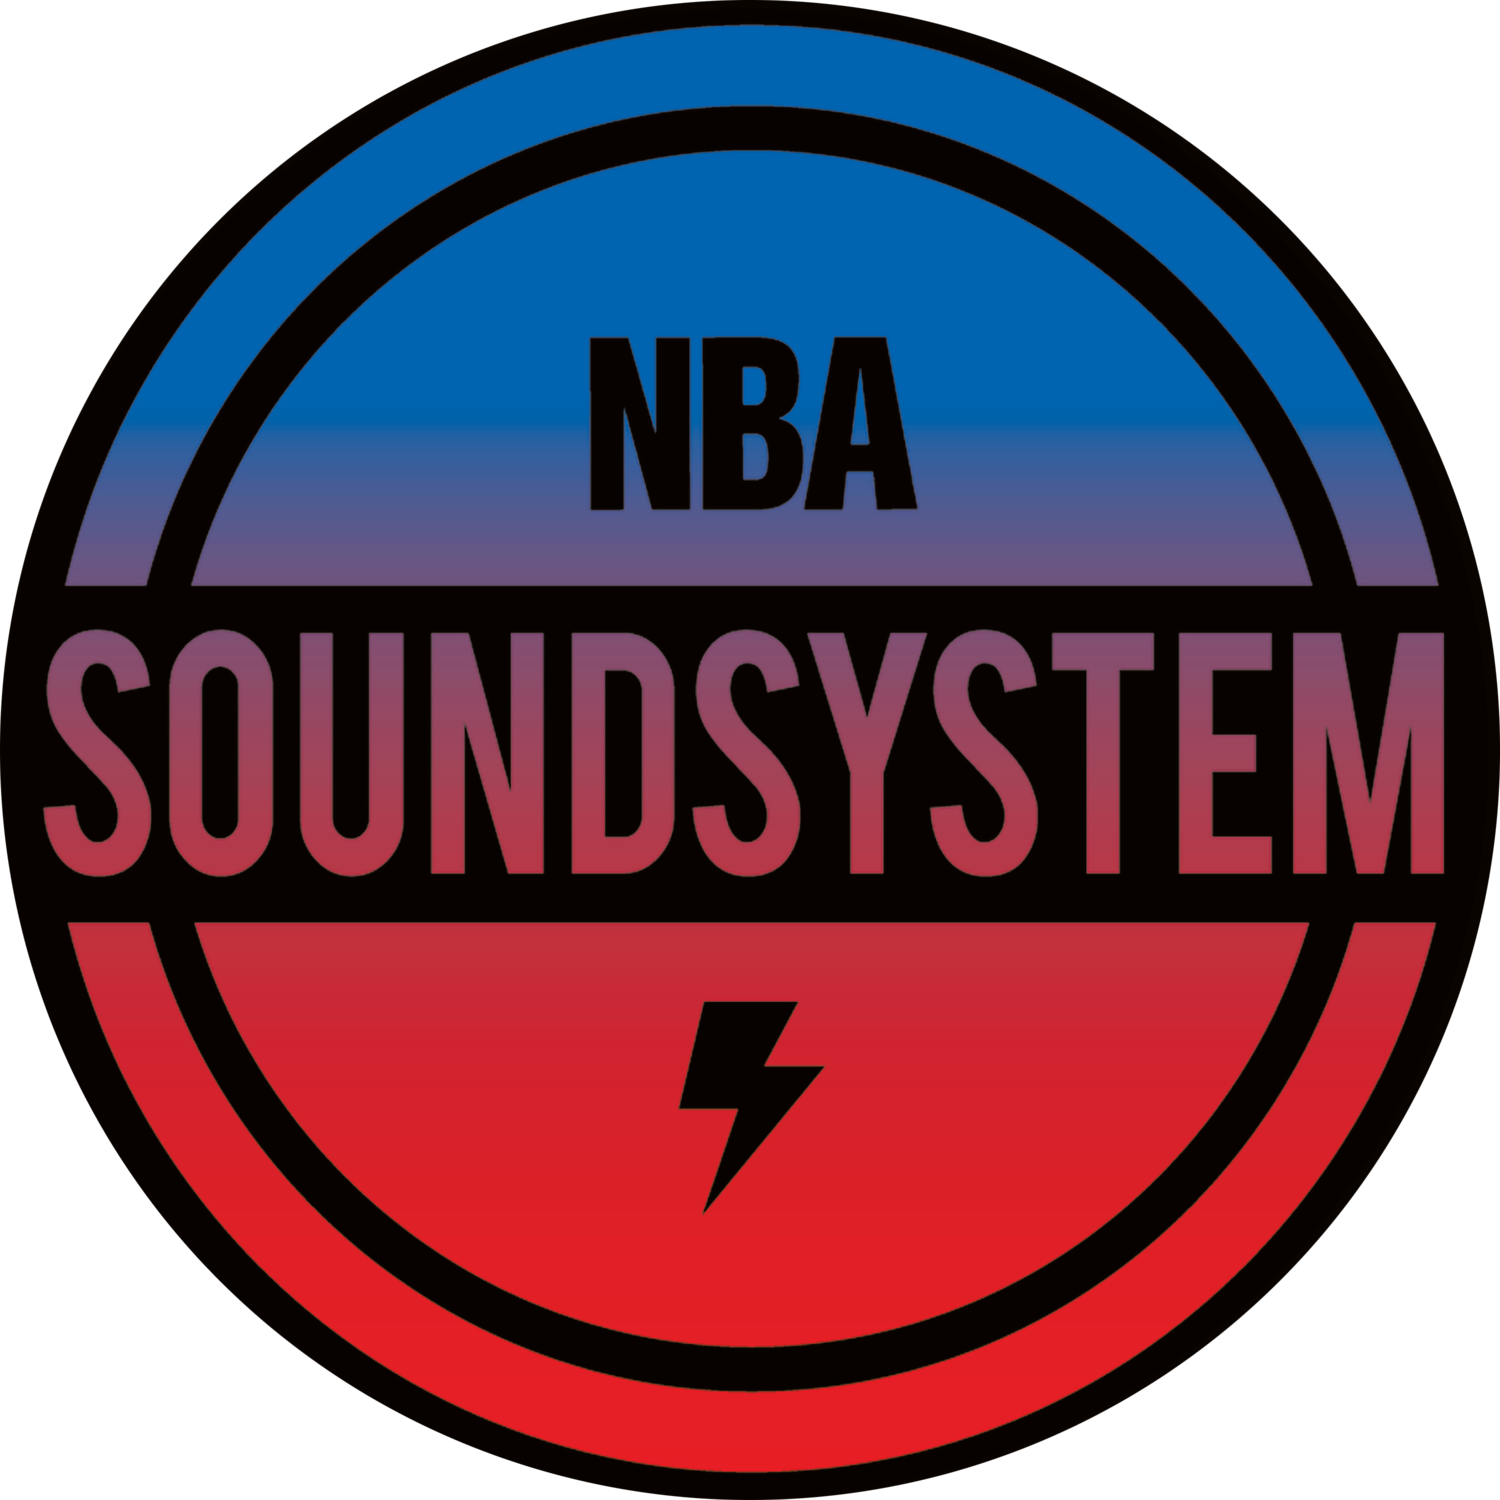 NBA SOUNDSYSTEM